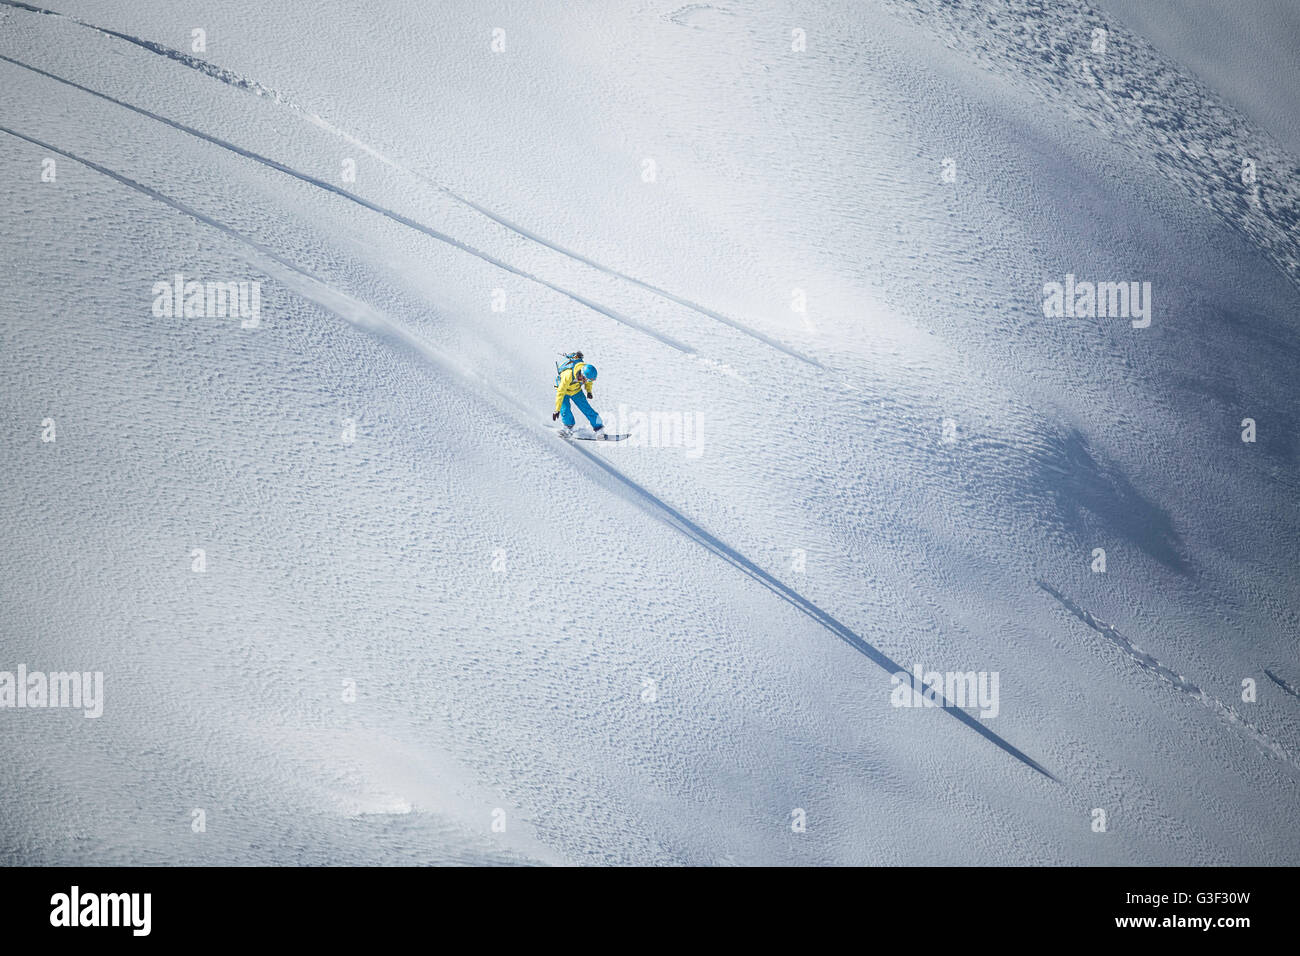 rapid downhill skiing with snowboard in the deep snow Stock Photo